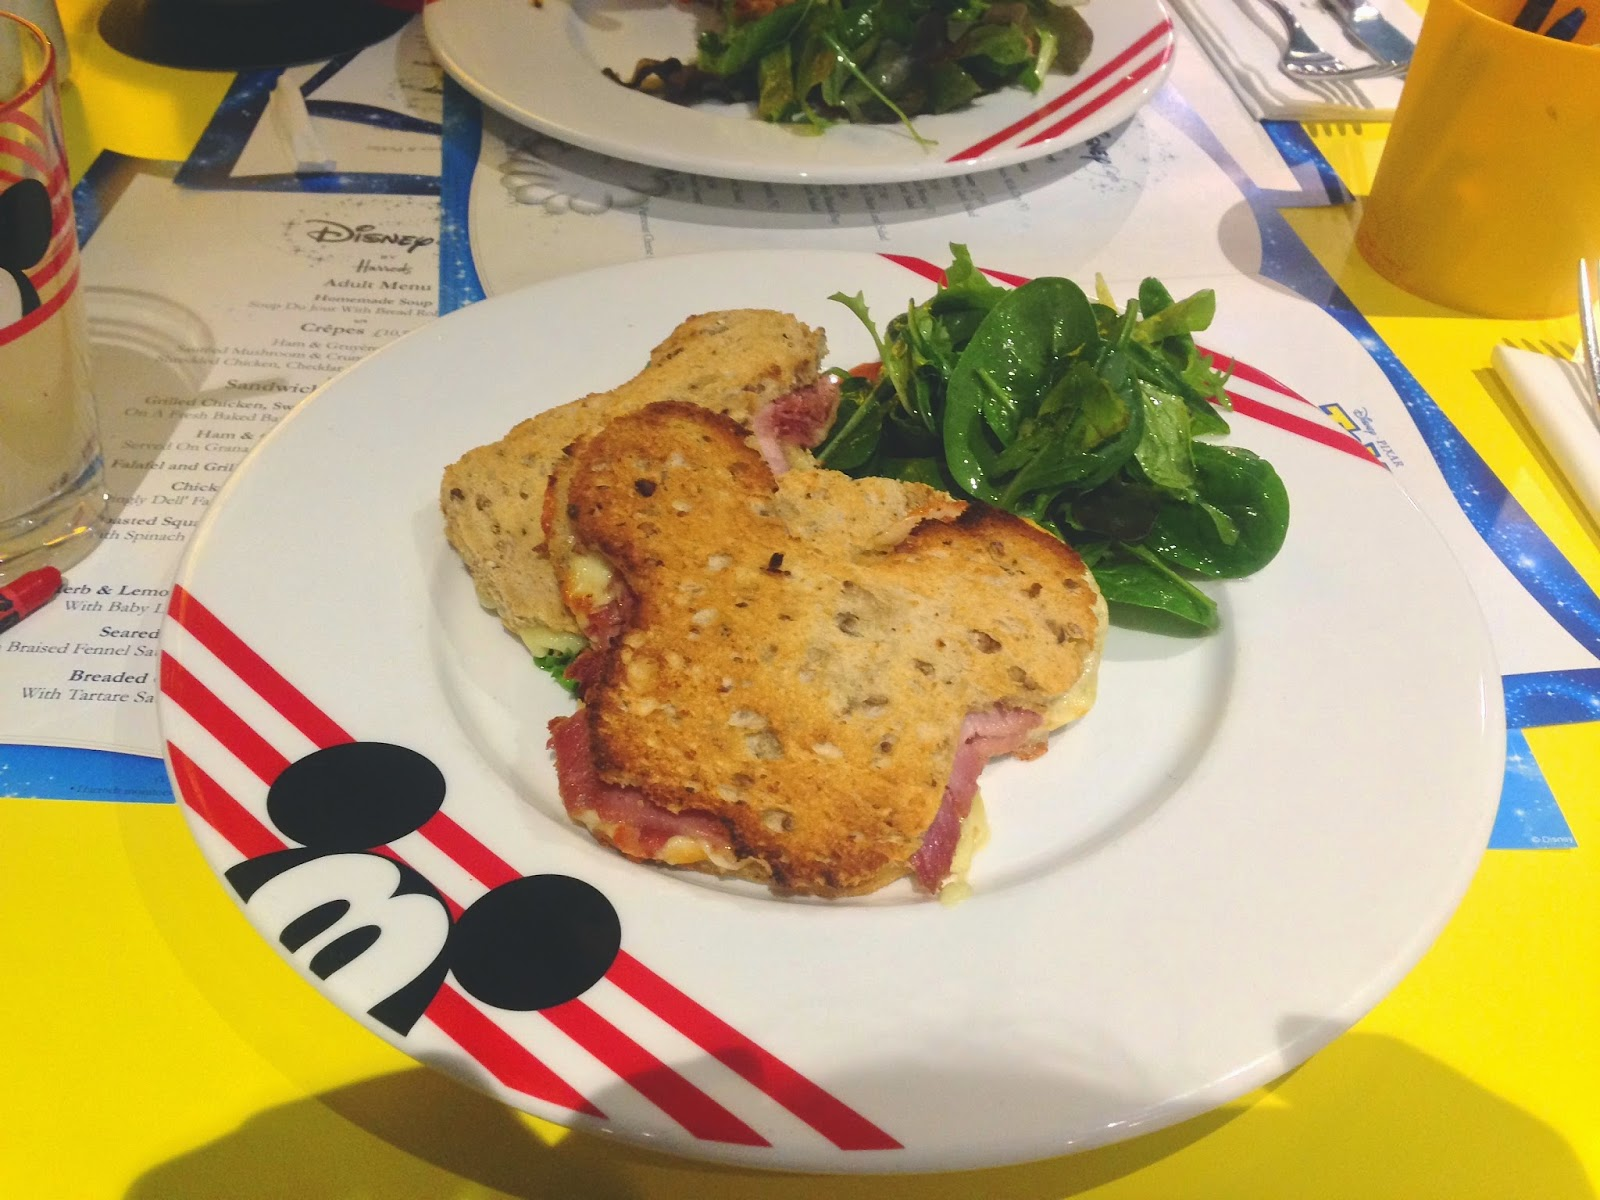 Disney Cafe Harrods Review